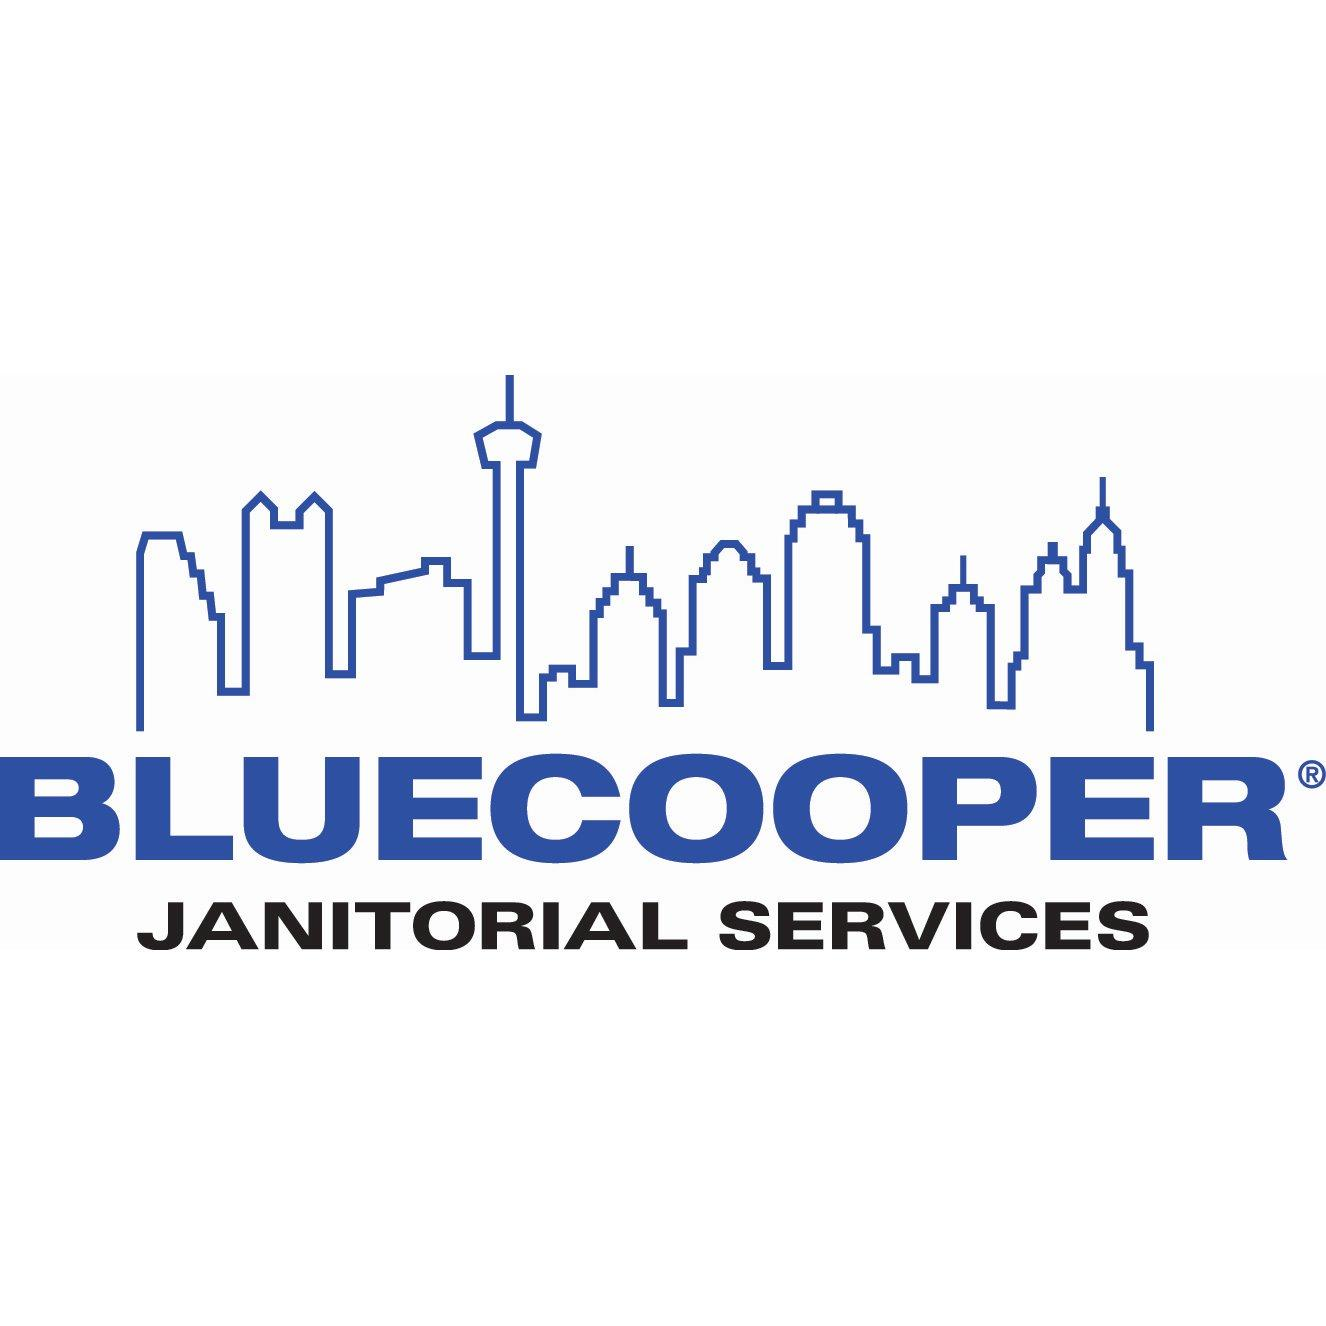 Bluecooper Janitorial Service